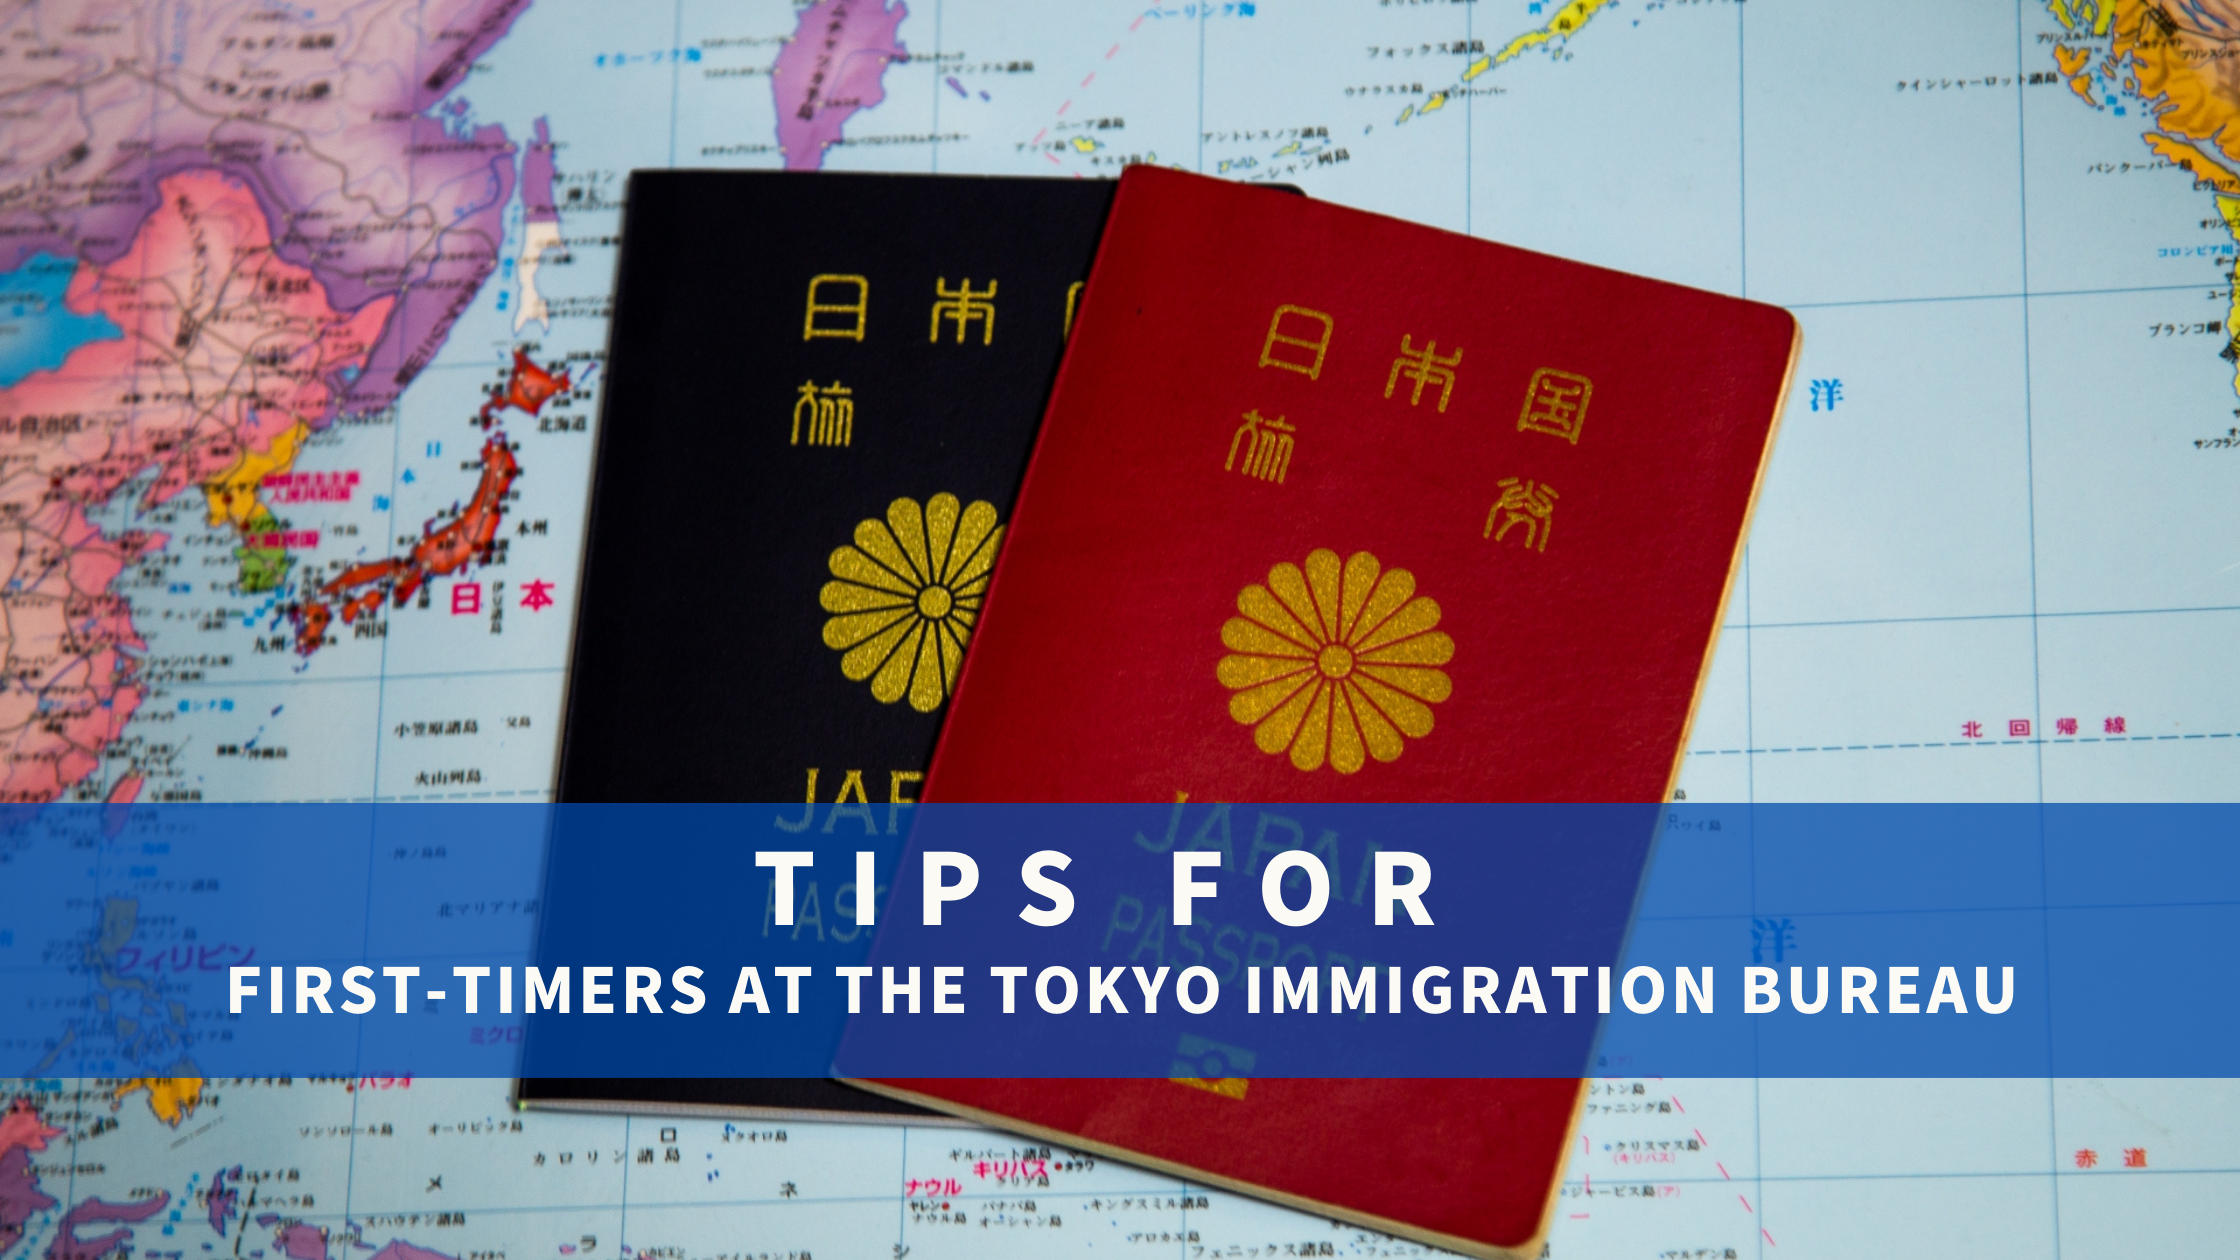 Tips for First-Timers at the Tokyo Immigration Bureau